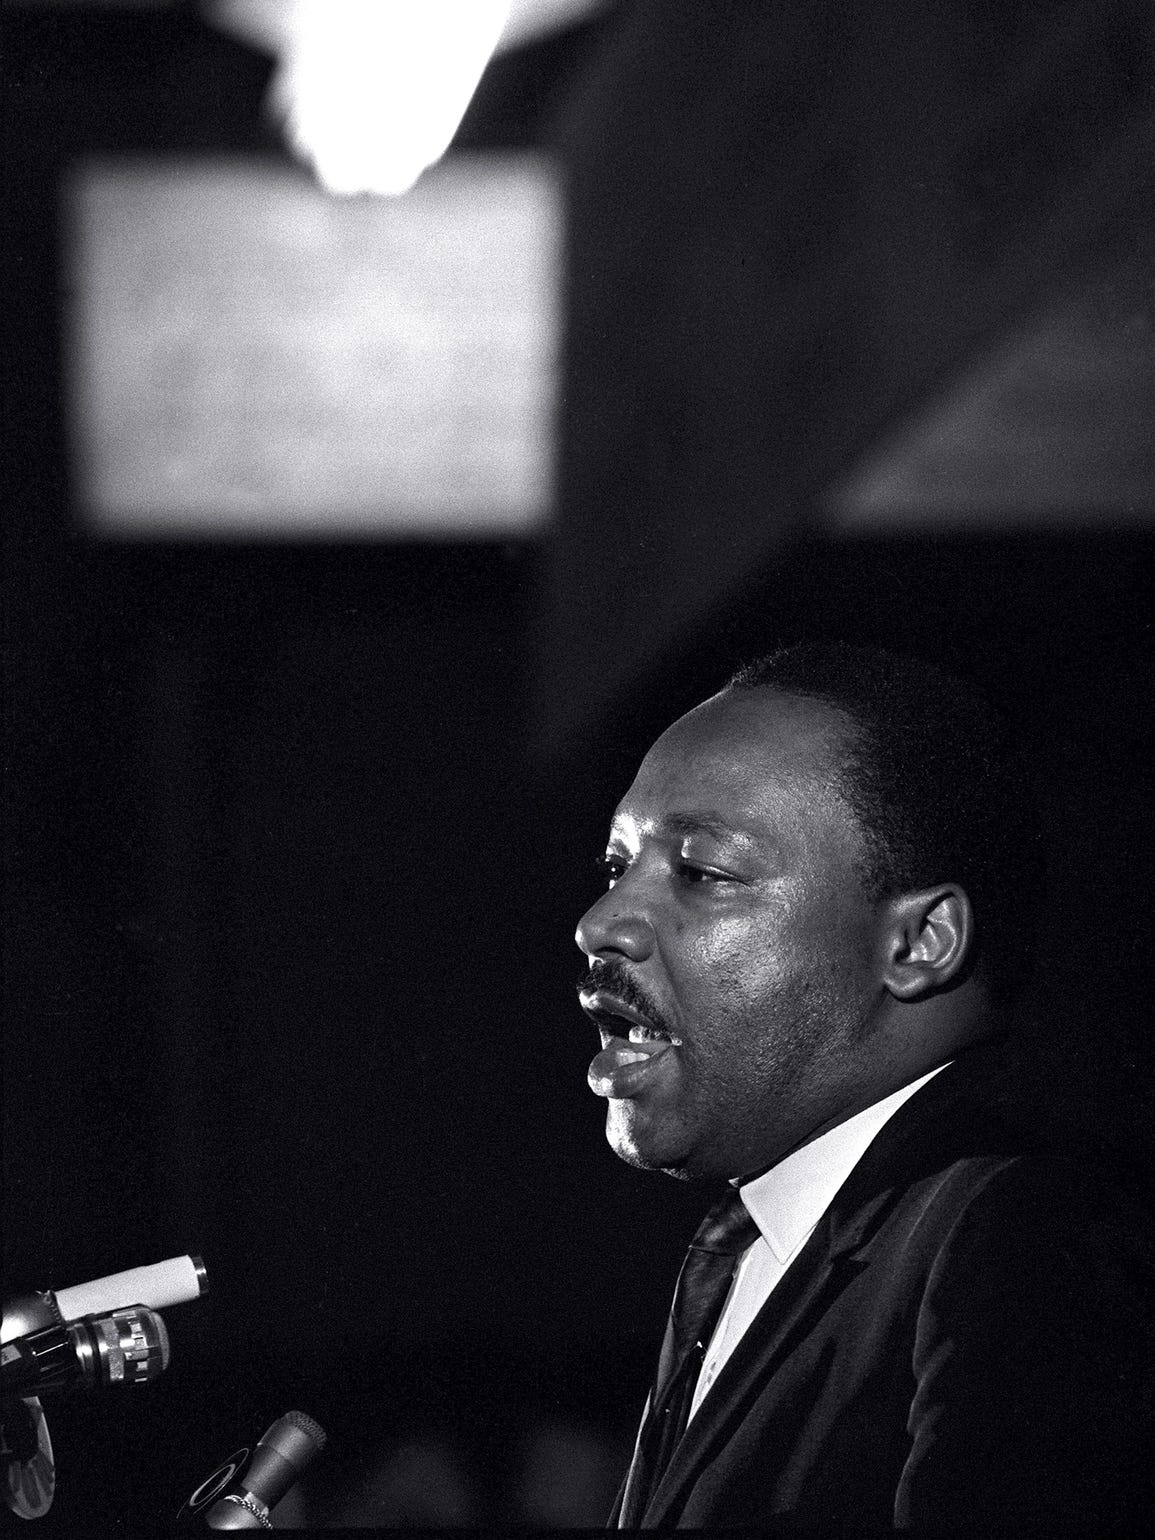 Dr. Martin Luther King Jr. makes his last public appearance at the Mason Temple in Memphis on April 3, 1968.